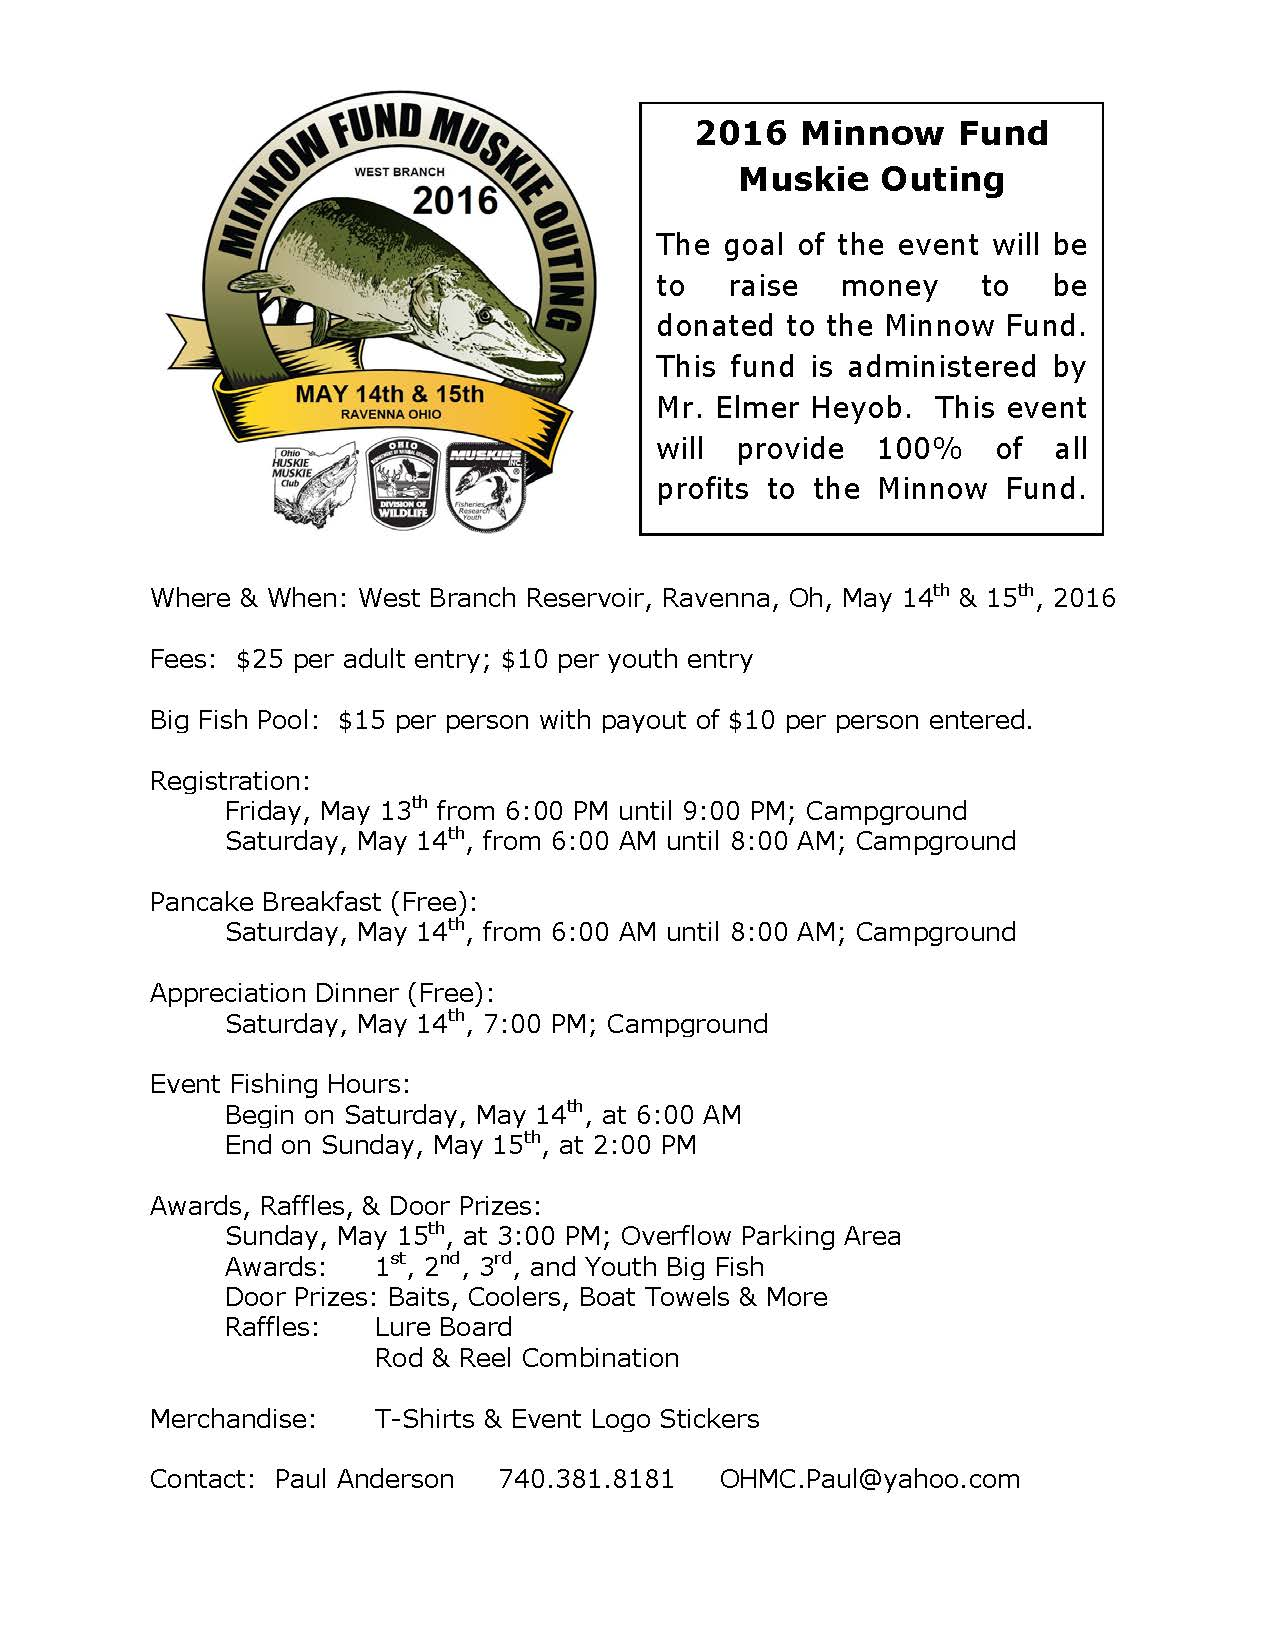 2016 Minnow Fund Muskie Outing Flyer